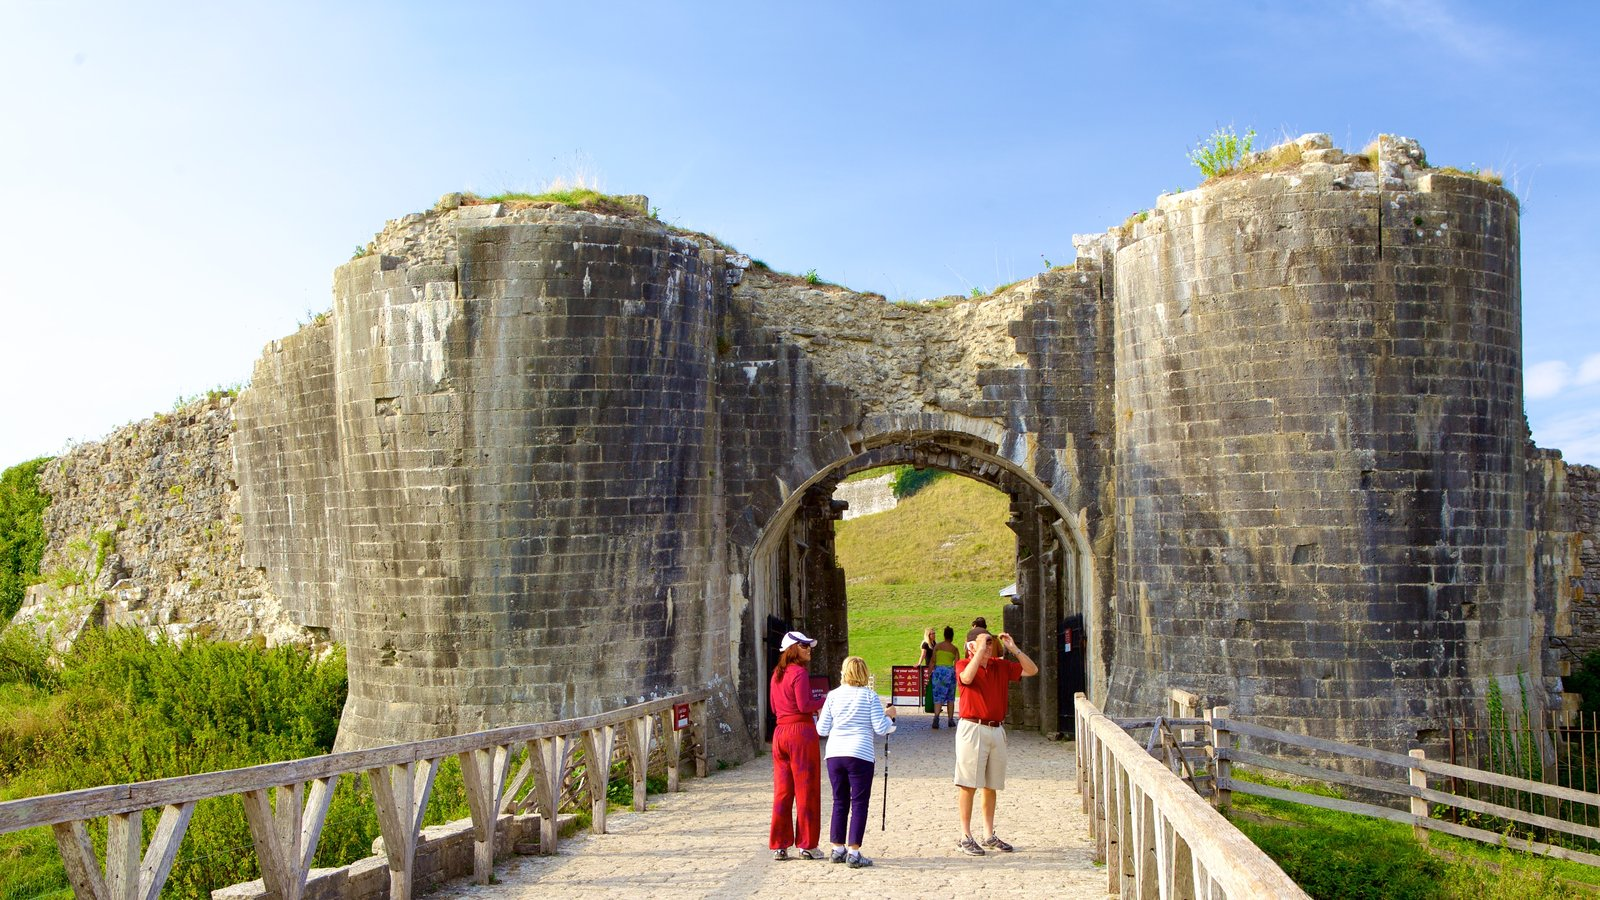 Corfe Castle which includes heritage elements and building ruins as well as a small group of people